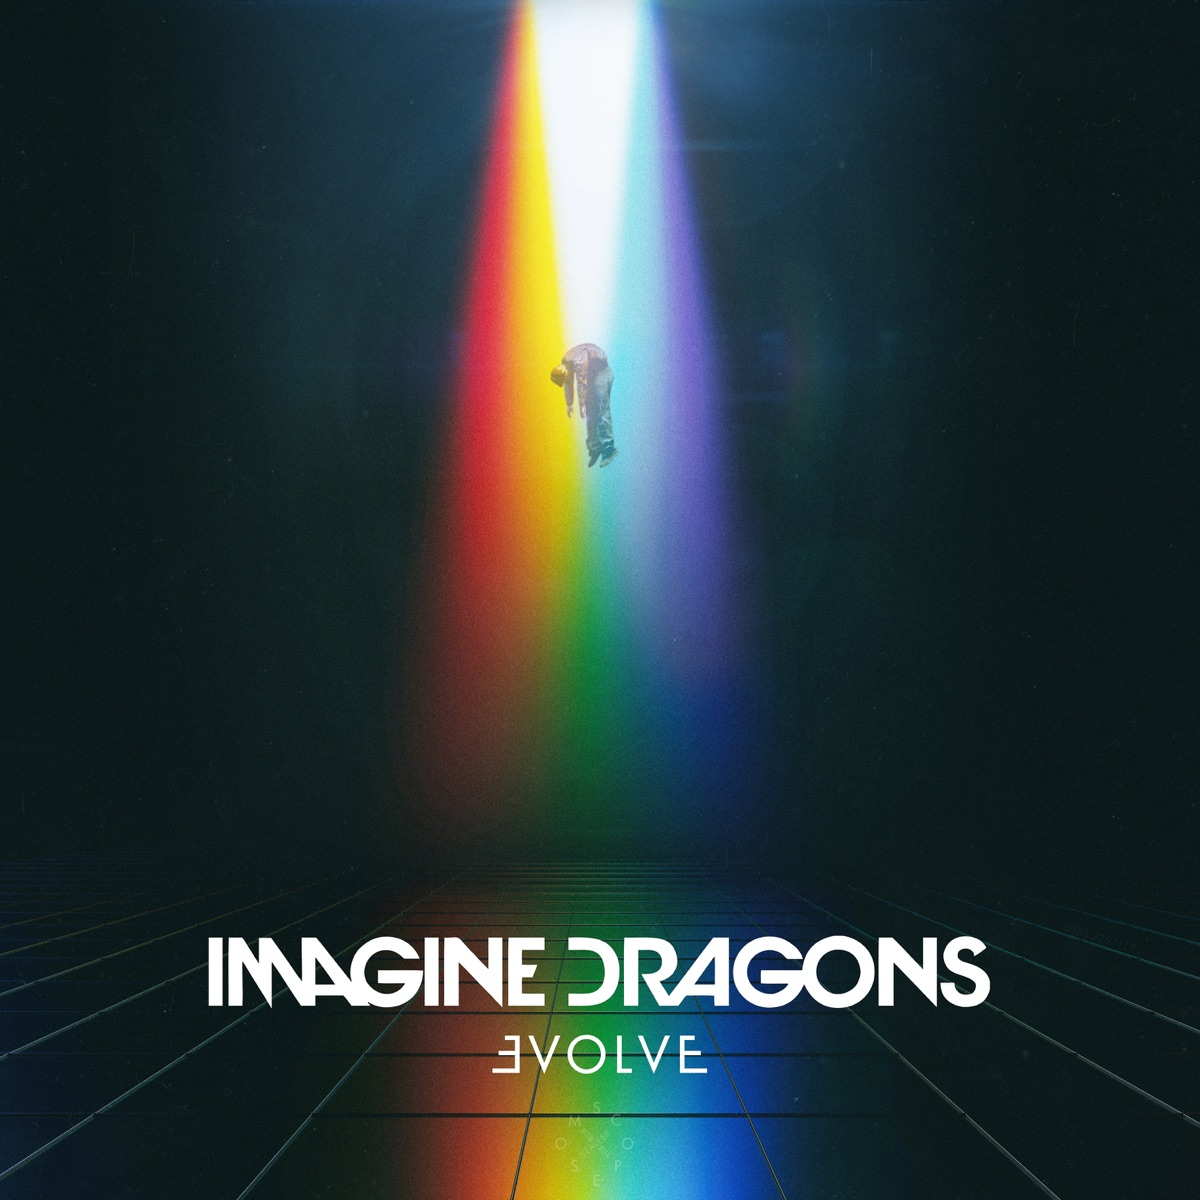 Evolve Imagine Dragons CD cover